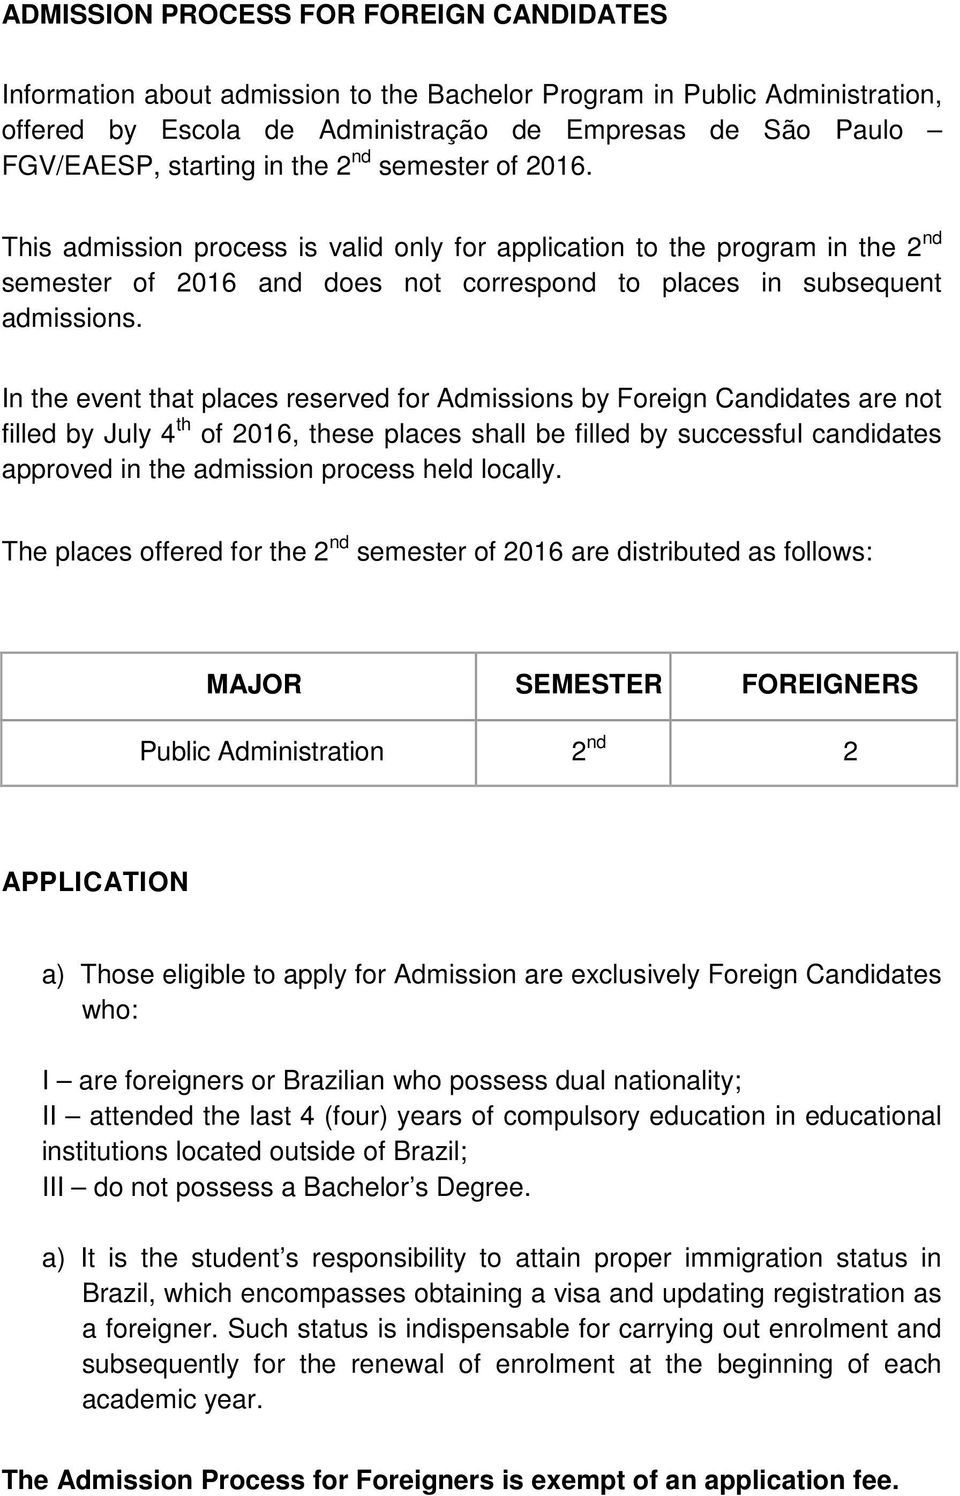 In the event that places reserved for Admissions by Foreign Candidates are not filled by July 4 th of 2016, these places shall be filled by successful candidates approved in the admission process